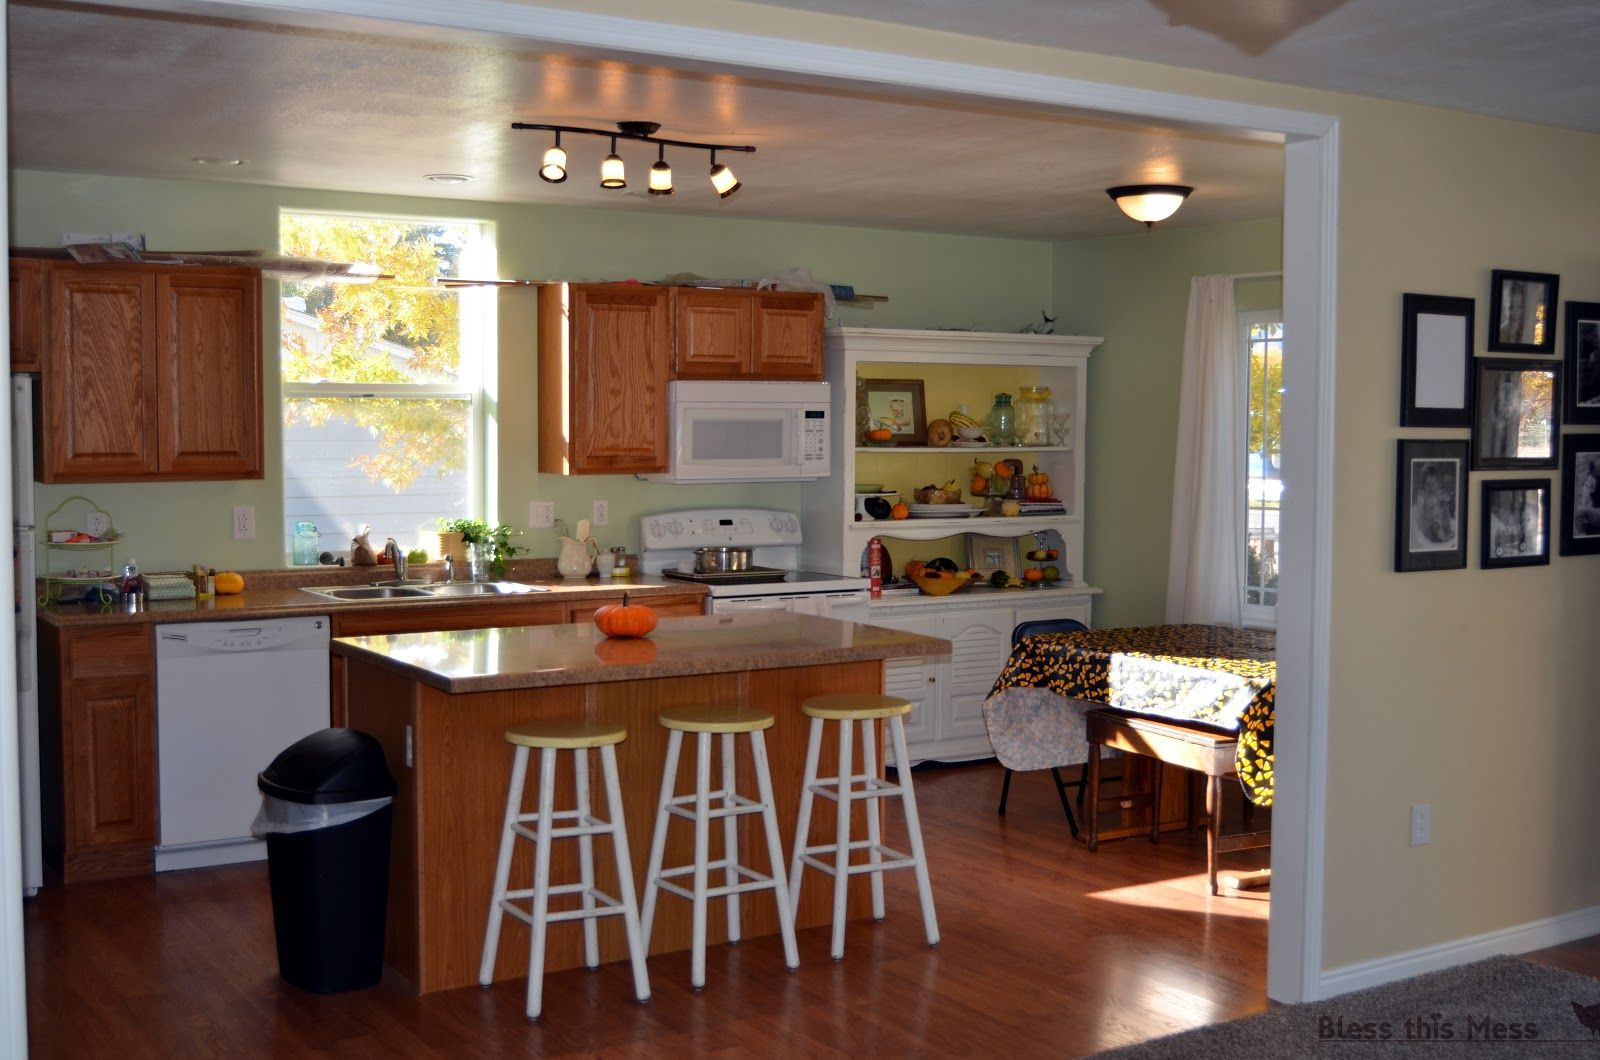 Remodeling Kitchen Ideas On A Budget kitchen design ideas on a budget | home design ideas